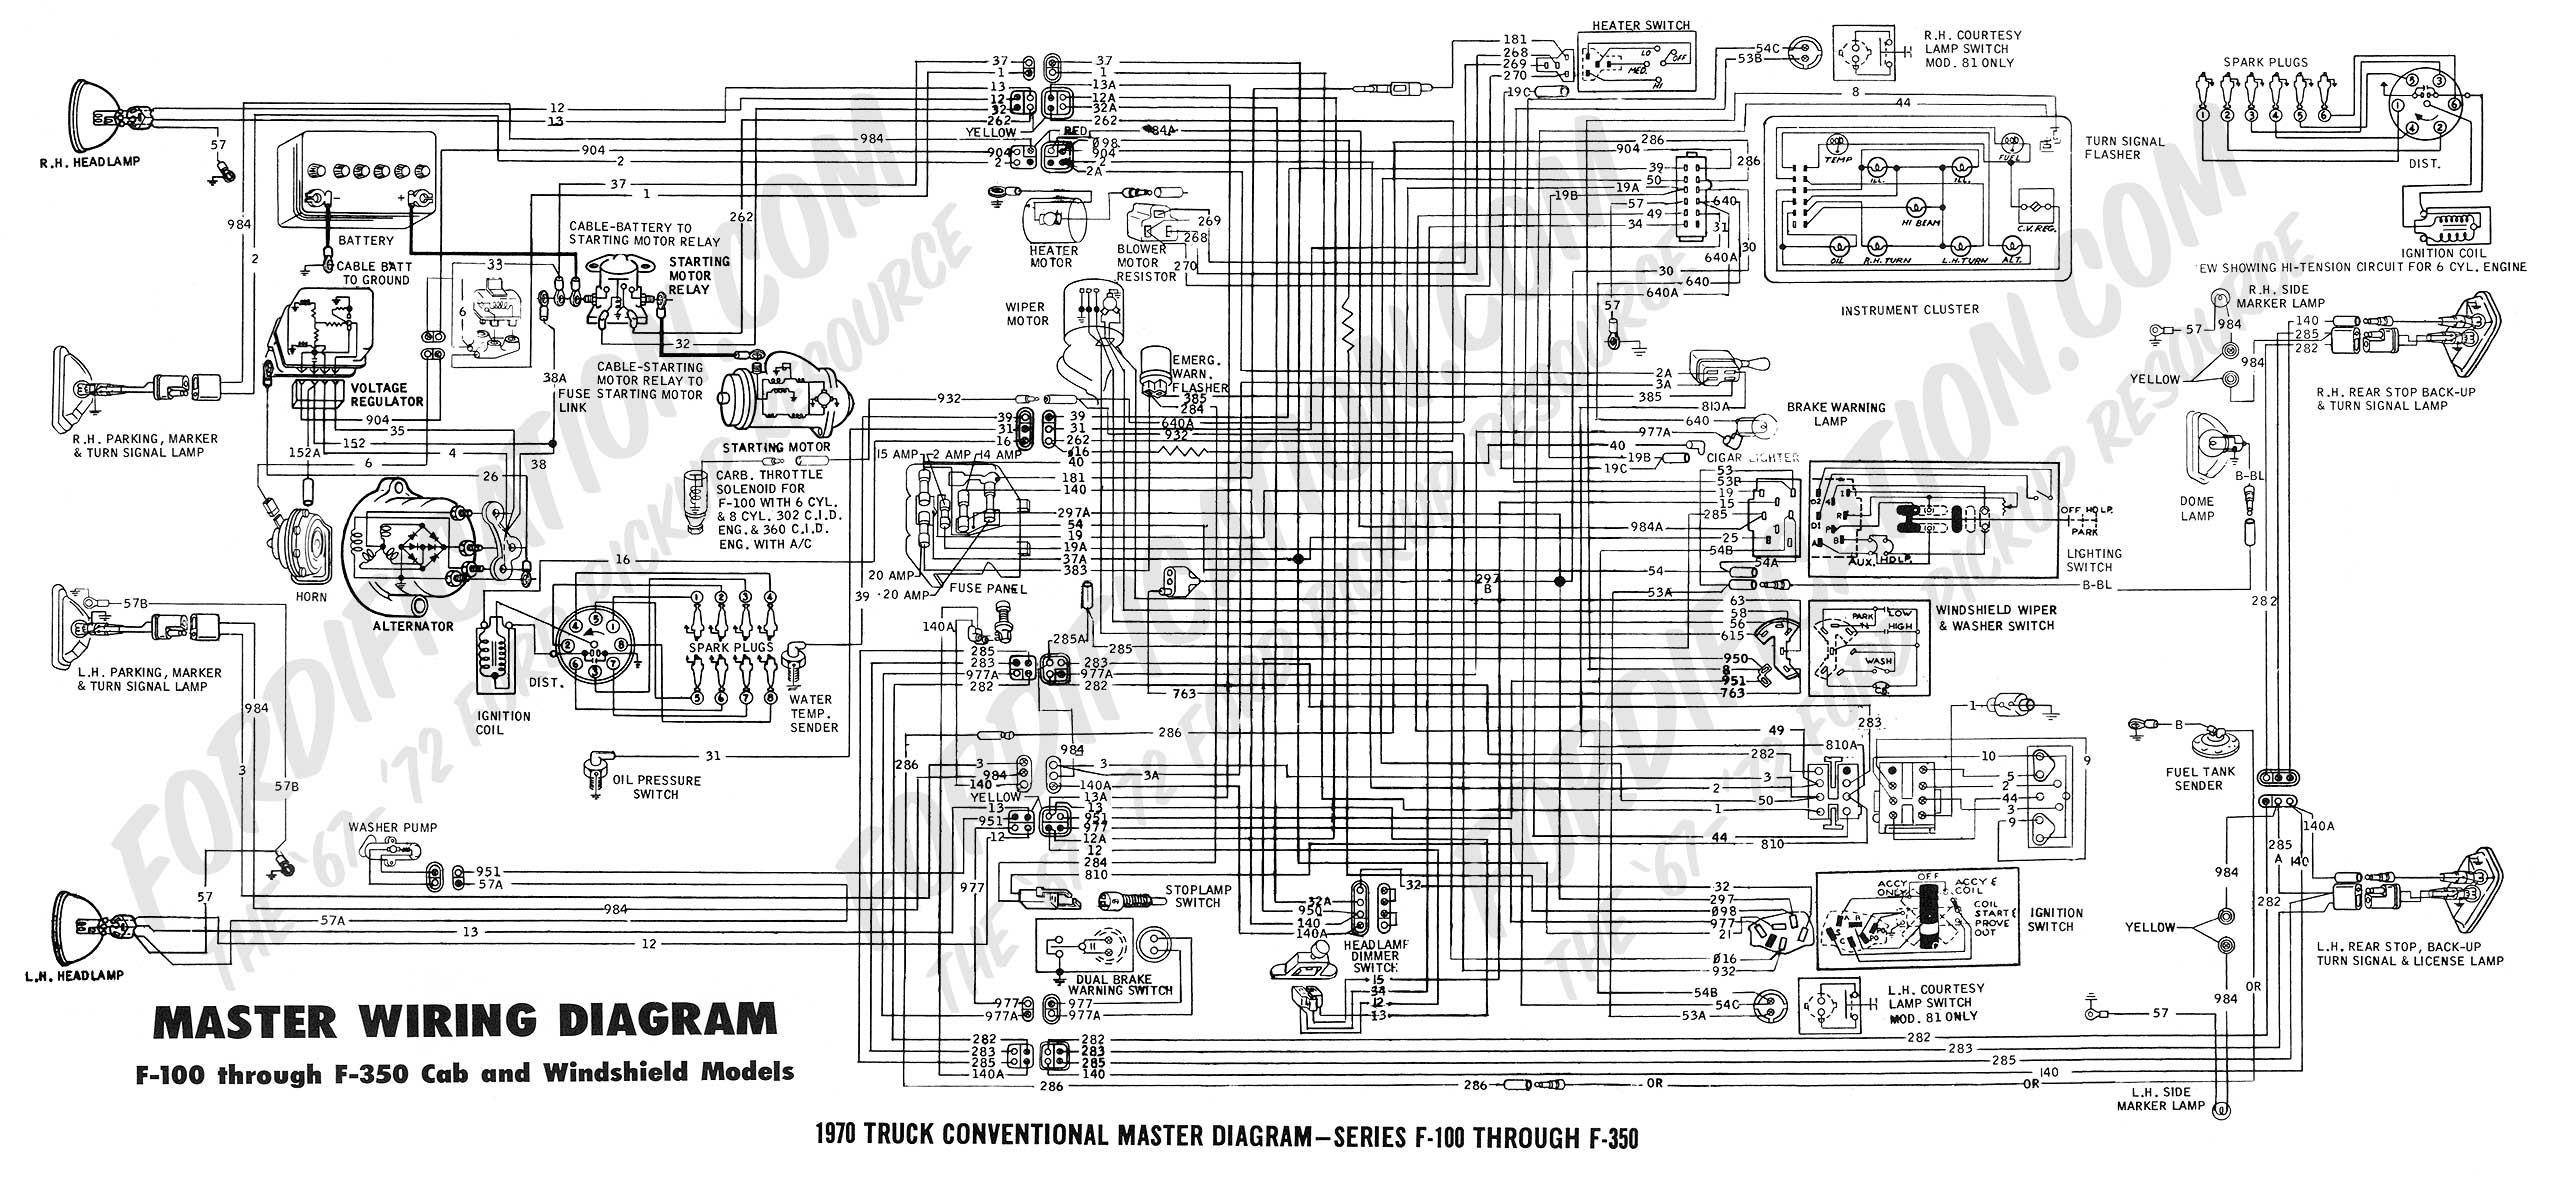 wiring diagram 70_master 1986 ford f150 wiring diagram 1986 ford bronco ii wiring diagram 2004 ford f150 engine wiring diagram at gsmx.co